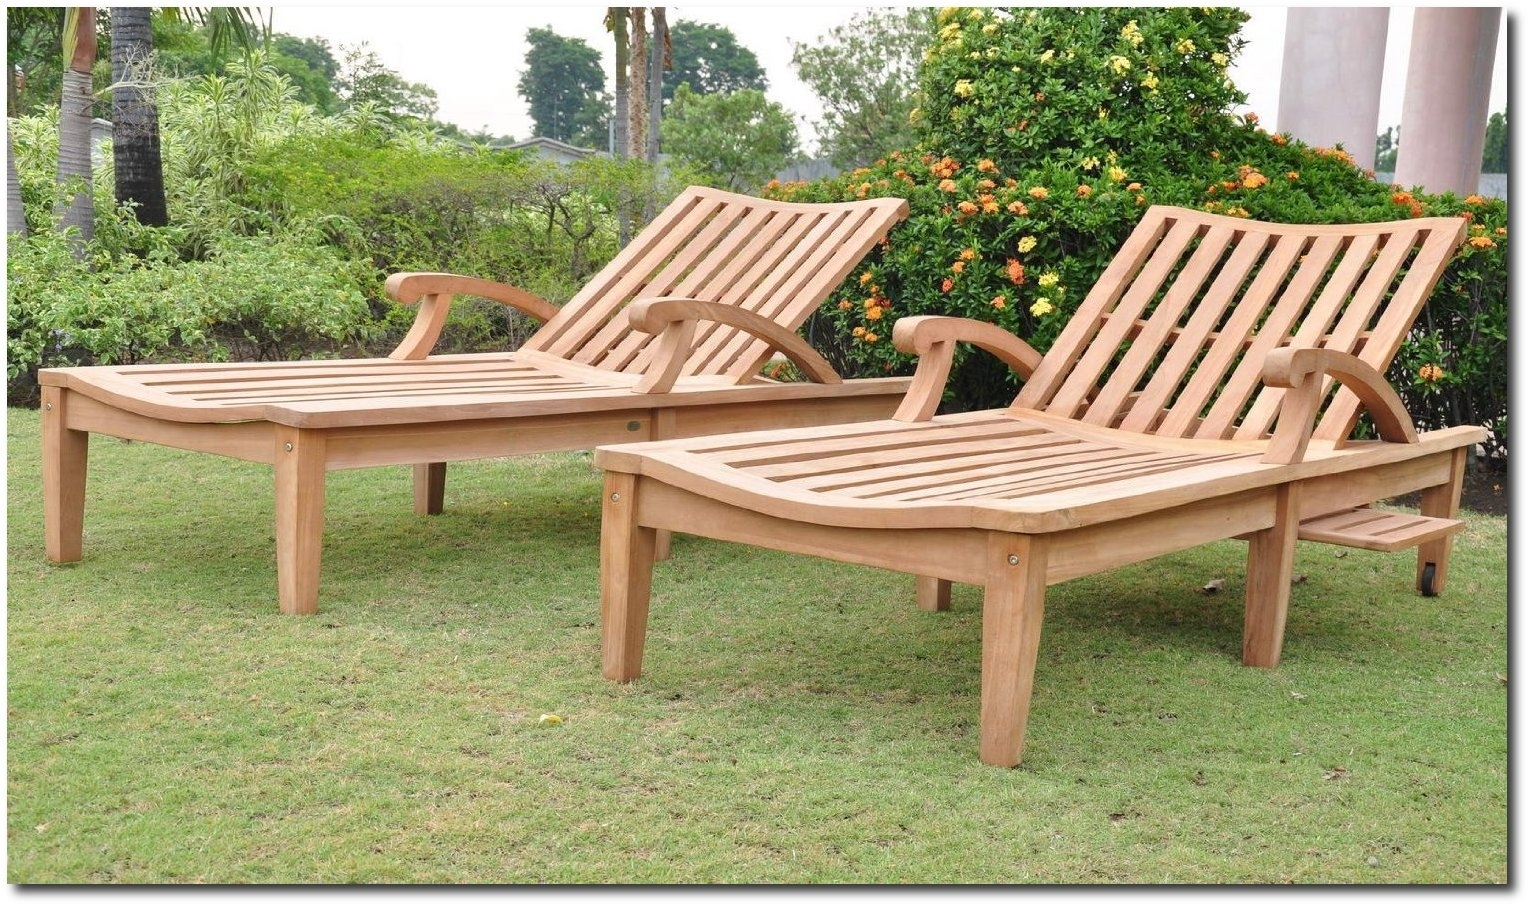 Furniture Appealing Teak Outdoor Furniture For Patio Decoration With Regard To Outdoor Teak Wood Furniture Ways To Keep Outdoor Teak Wood Furniture